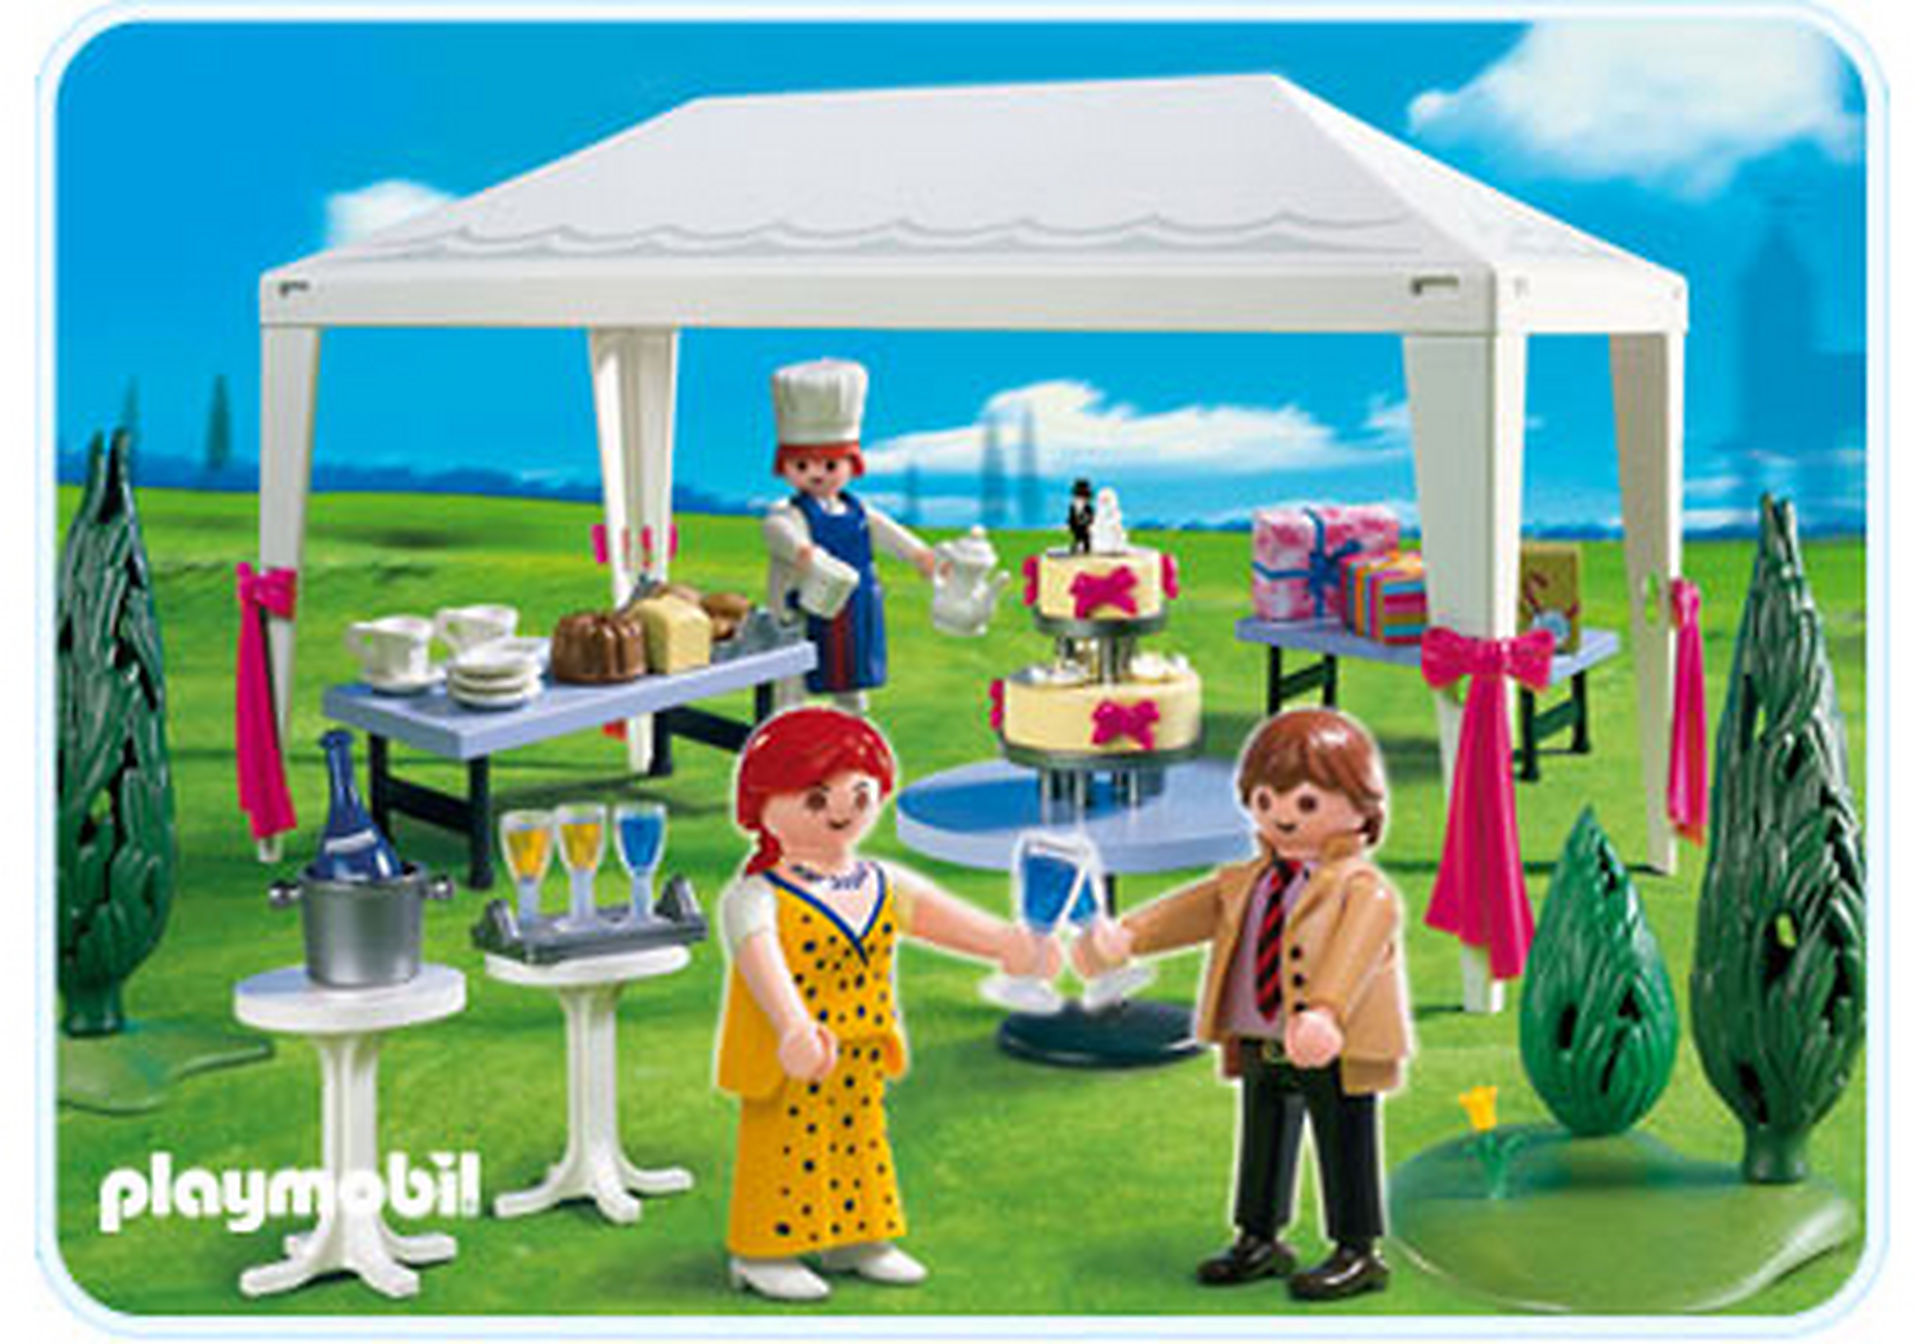 http://media.playmobil.com/i/playmobil/4308-A_product_detail/Invités et tente de réception